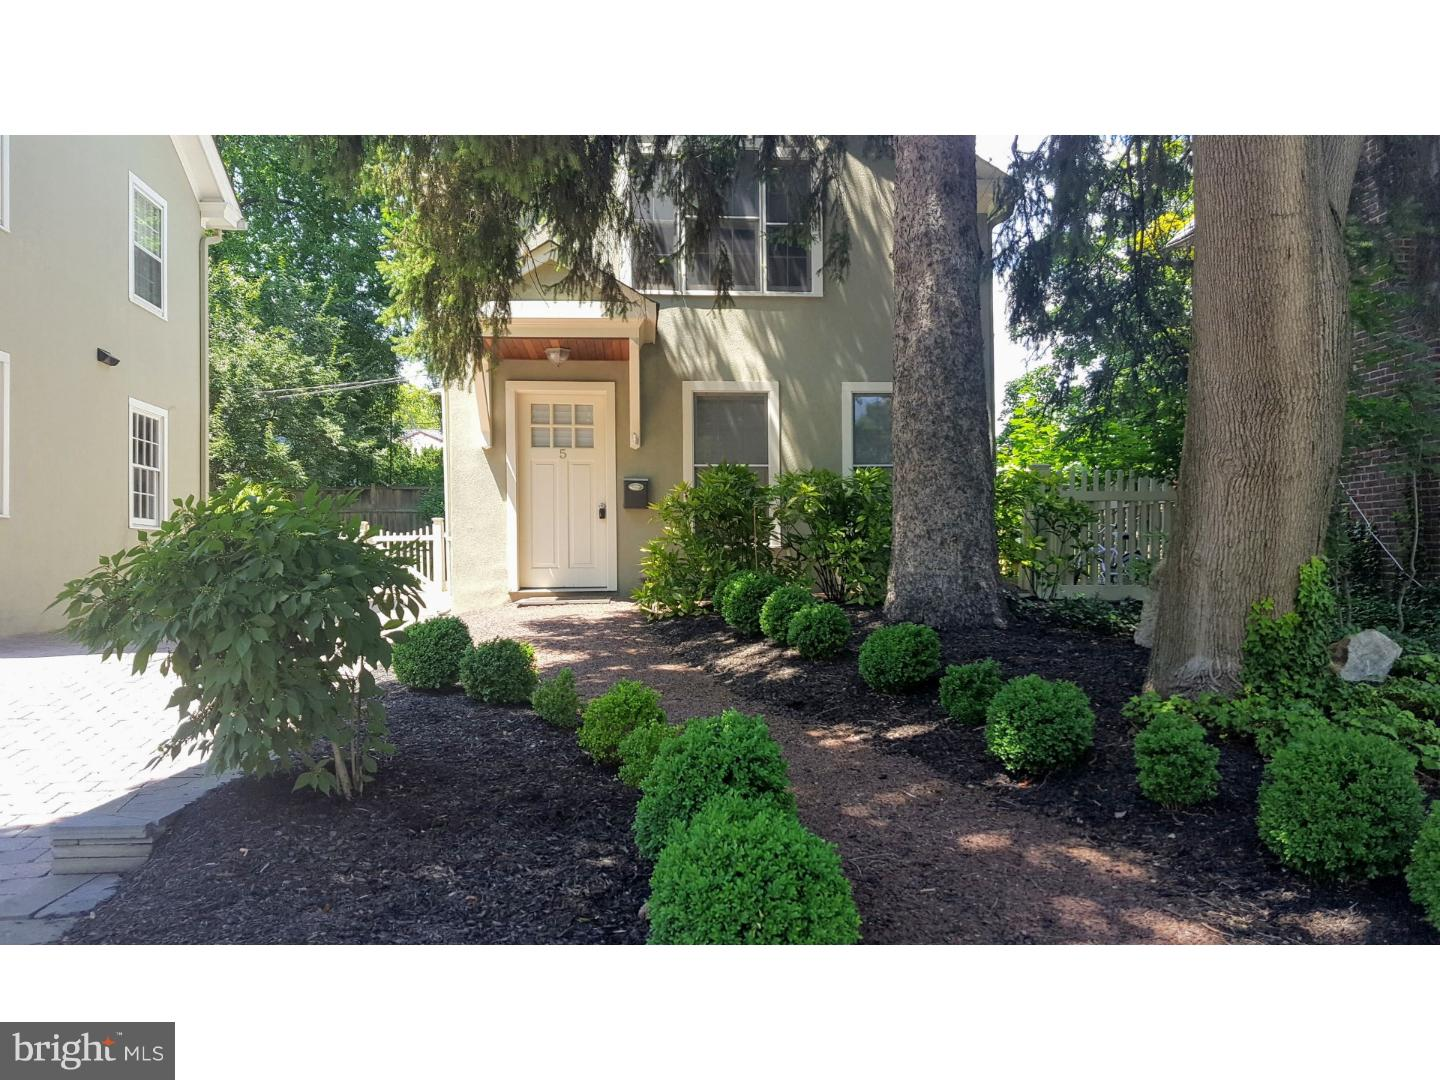 Property for Rent at 5 SERGEANT Street Princeton, New Jersey 08540 United States